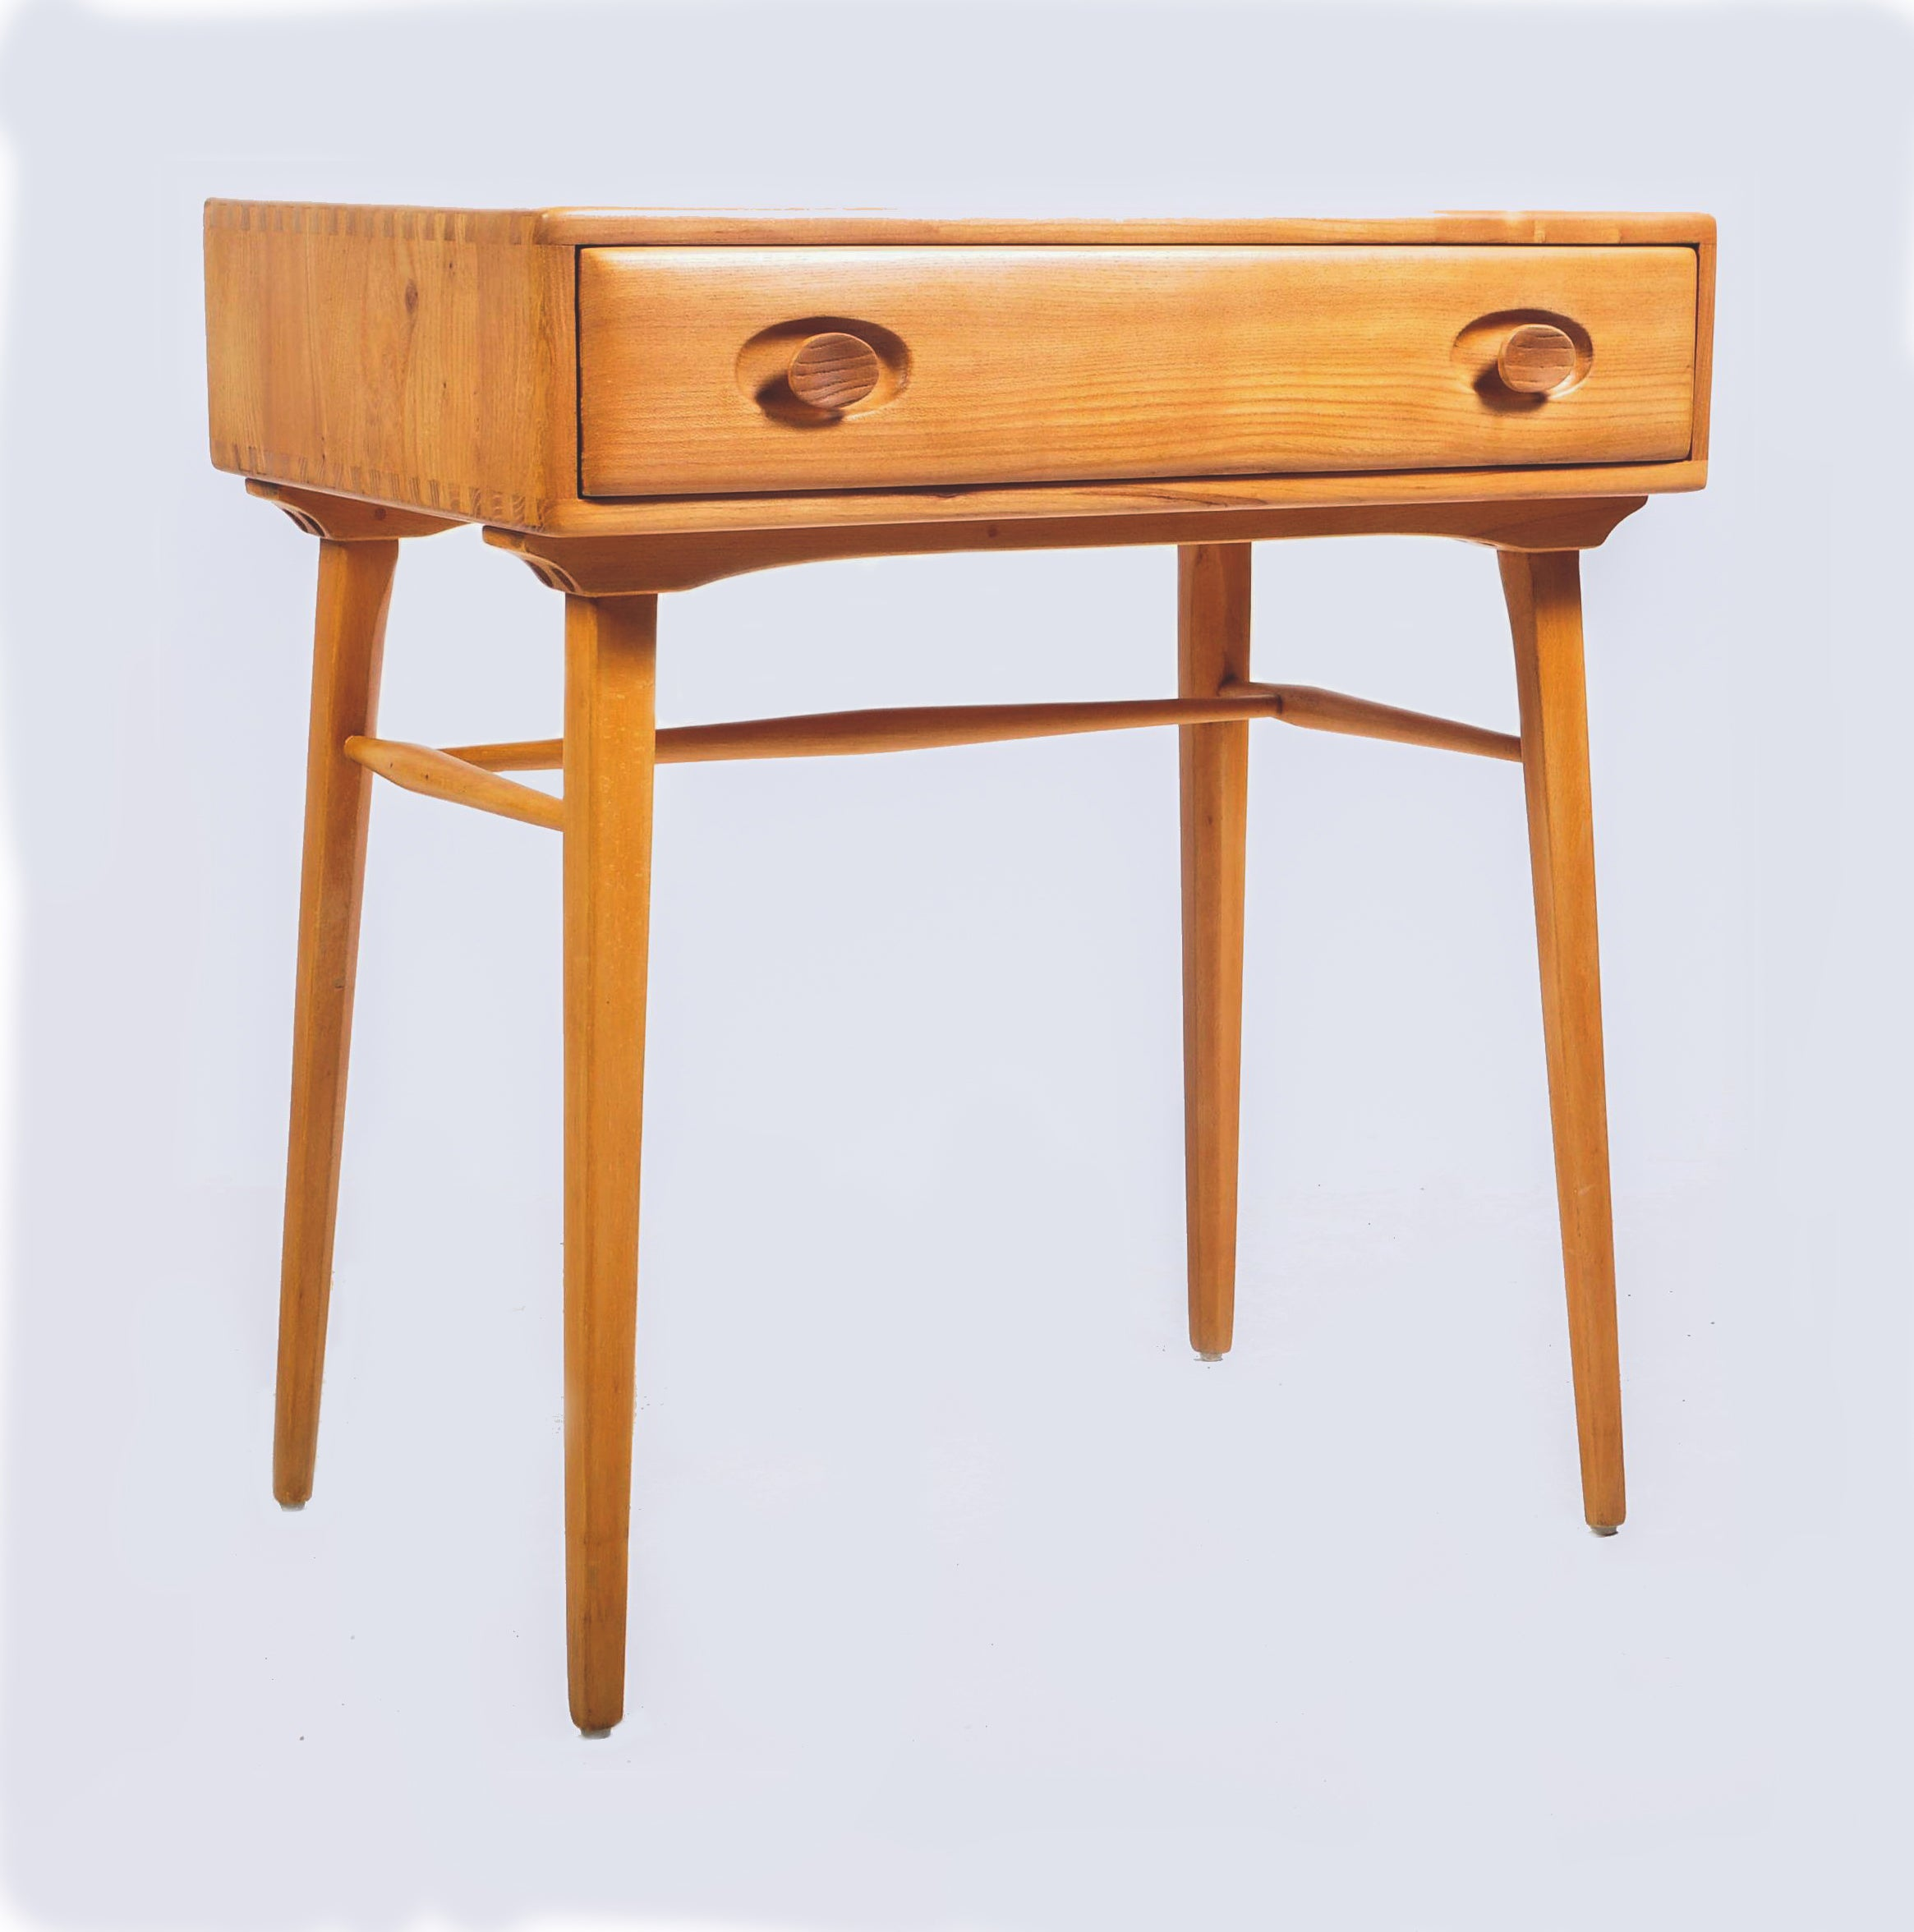 Rare Ercol Vintage Writing Desk Model 437